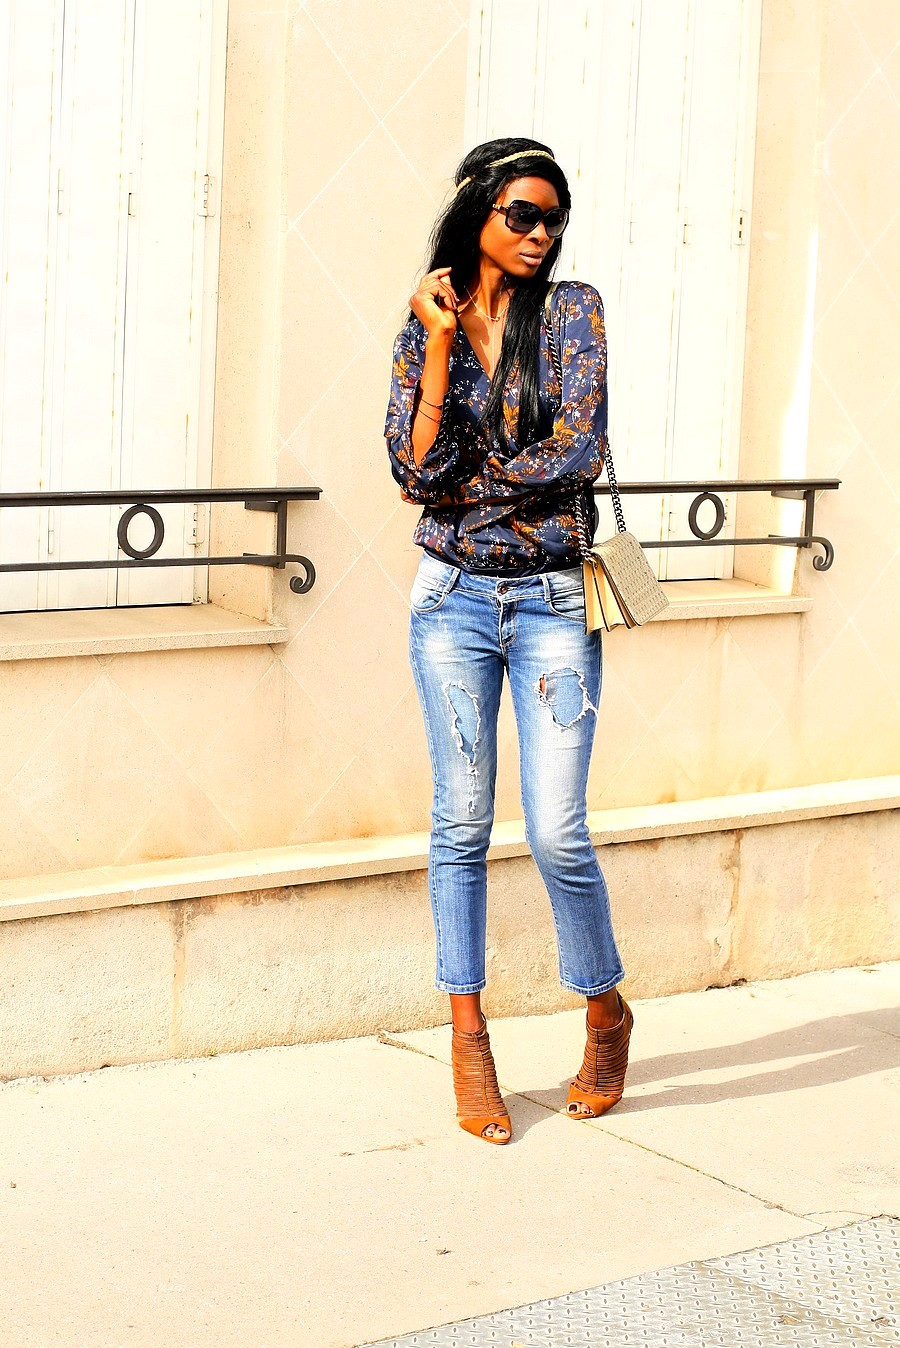 idee-look-boheme-chic-body-cache-coeur-jeans-dechire